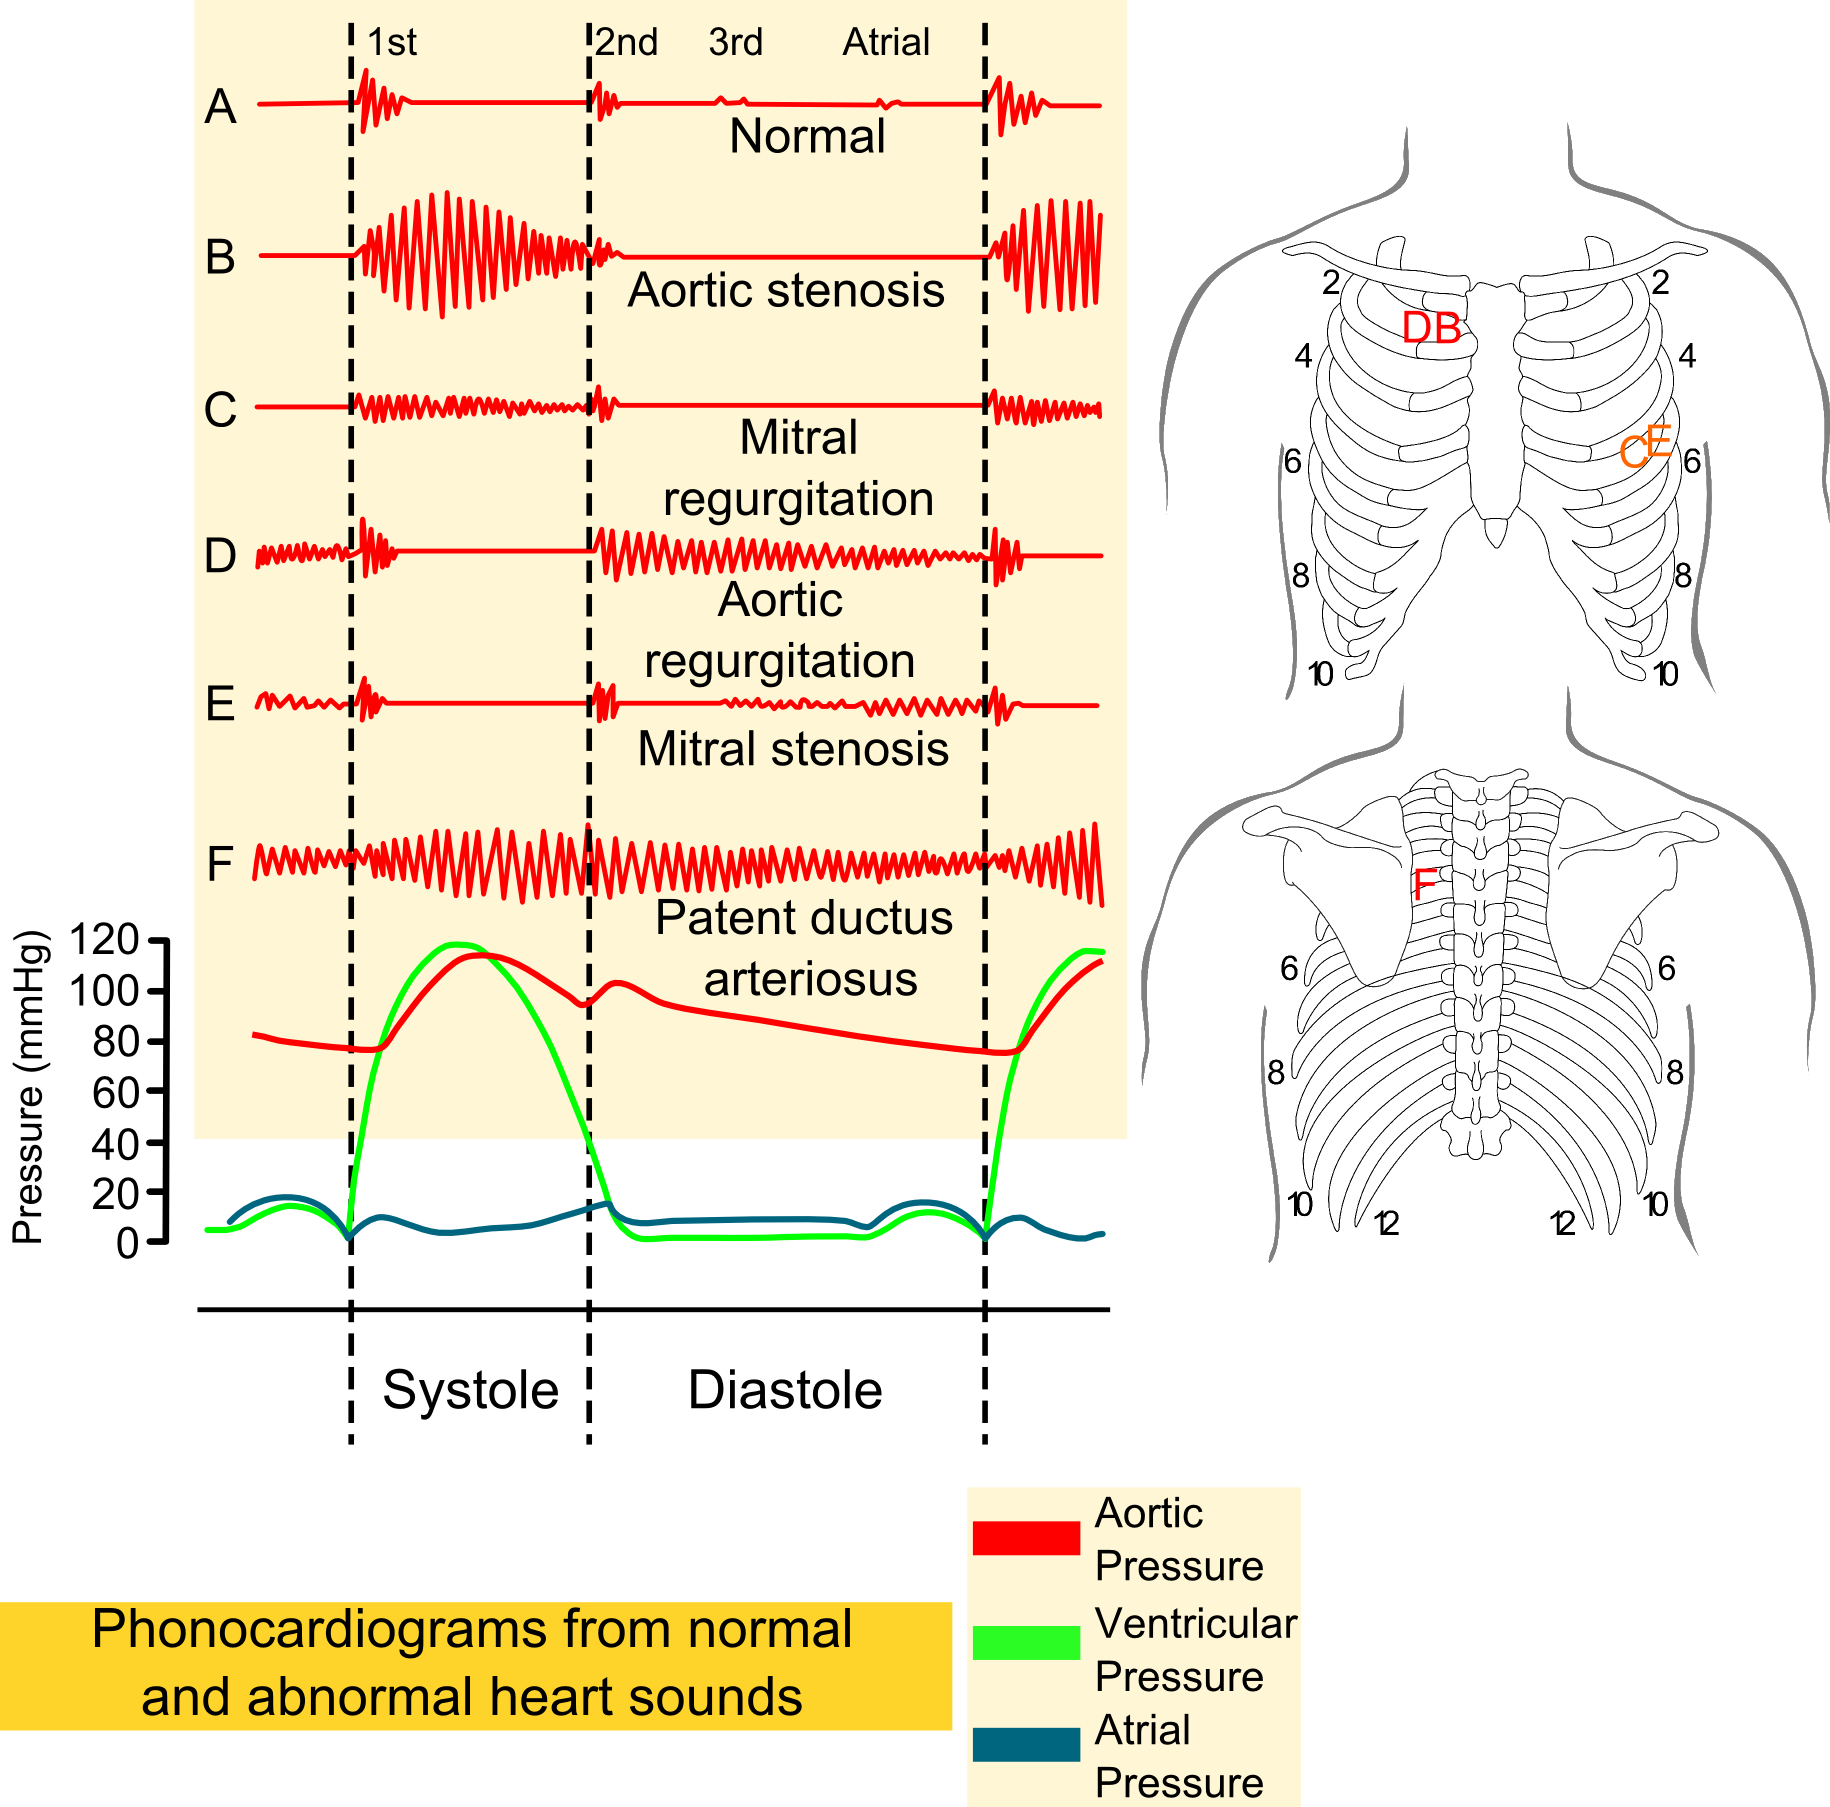 File Phonocardiograms From Normal And Abnormal Heart